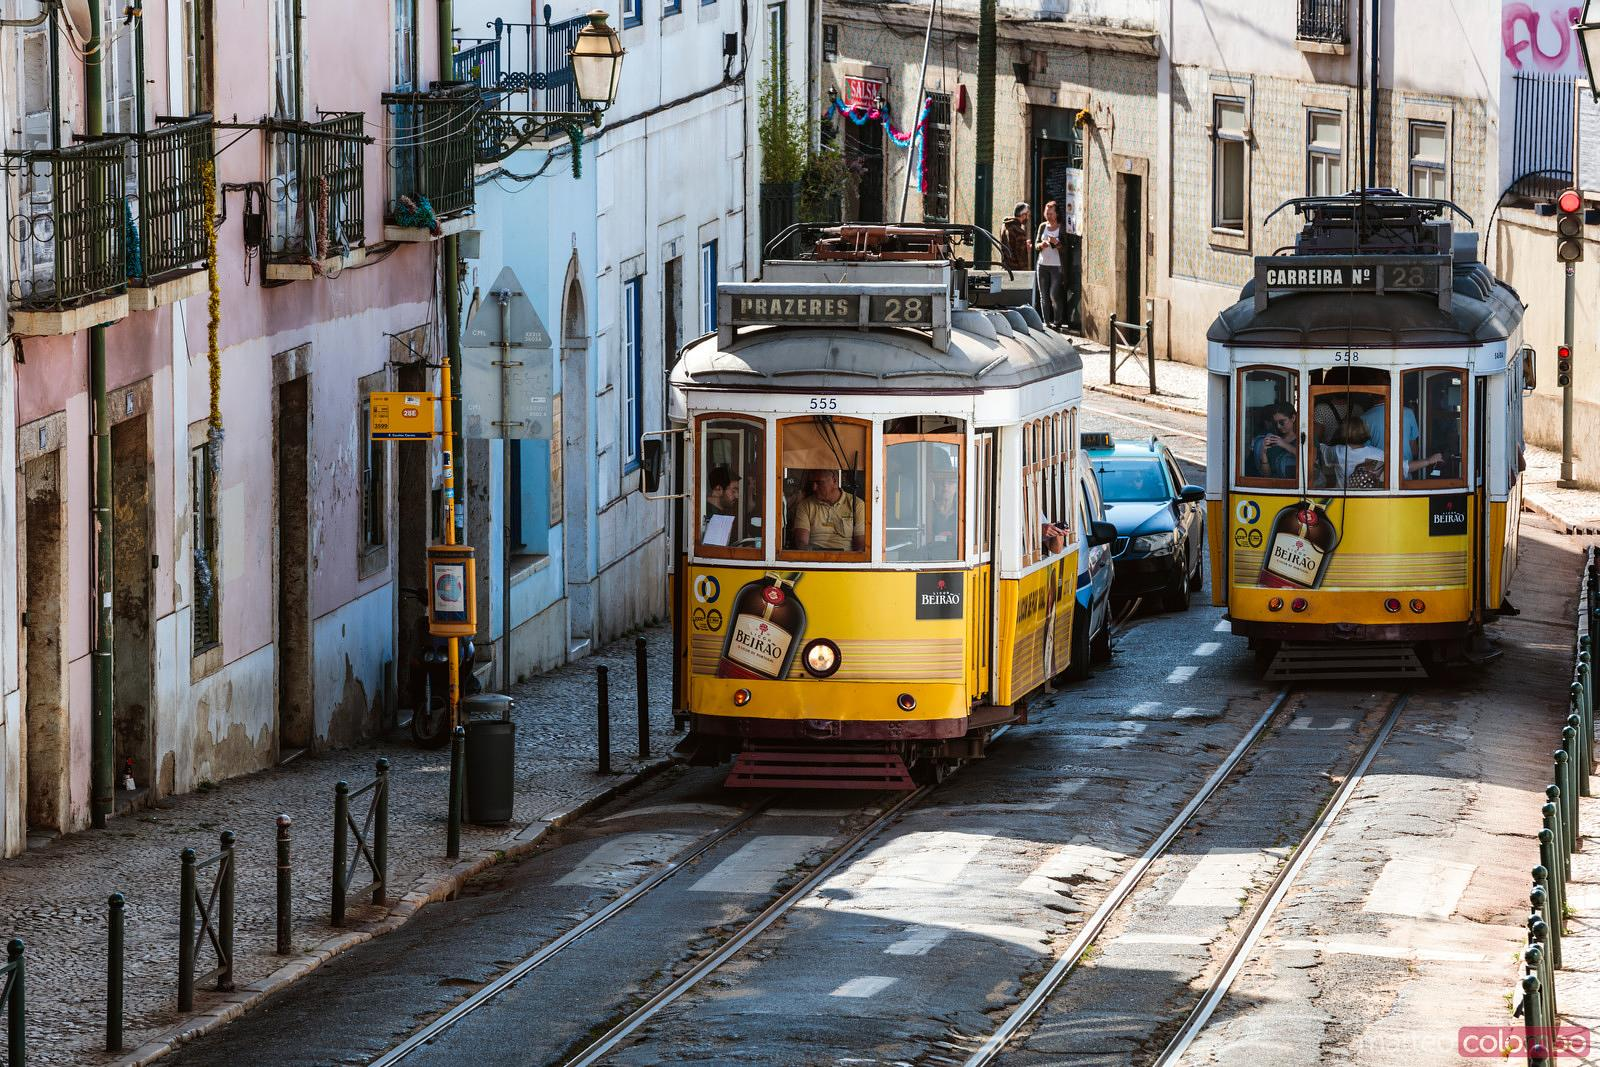 Elevated view of two trams in the streets of Lisbon, Portugal